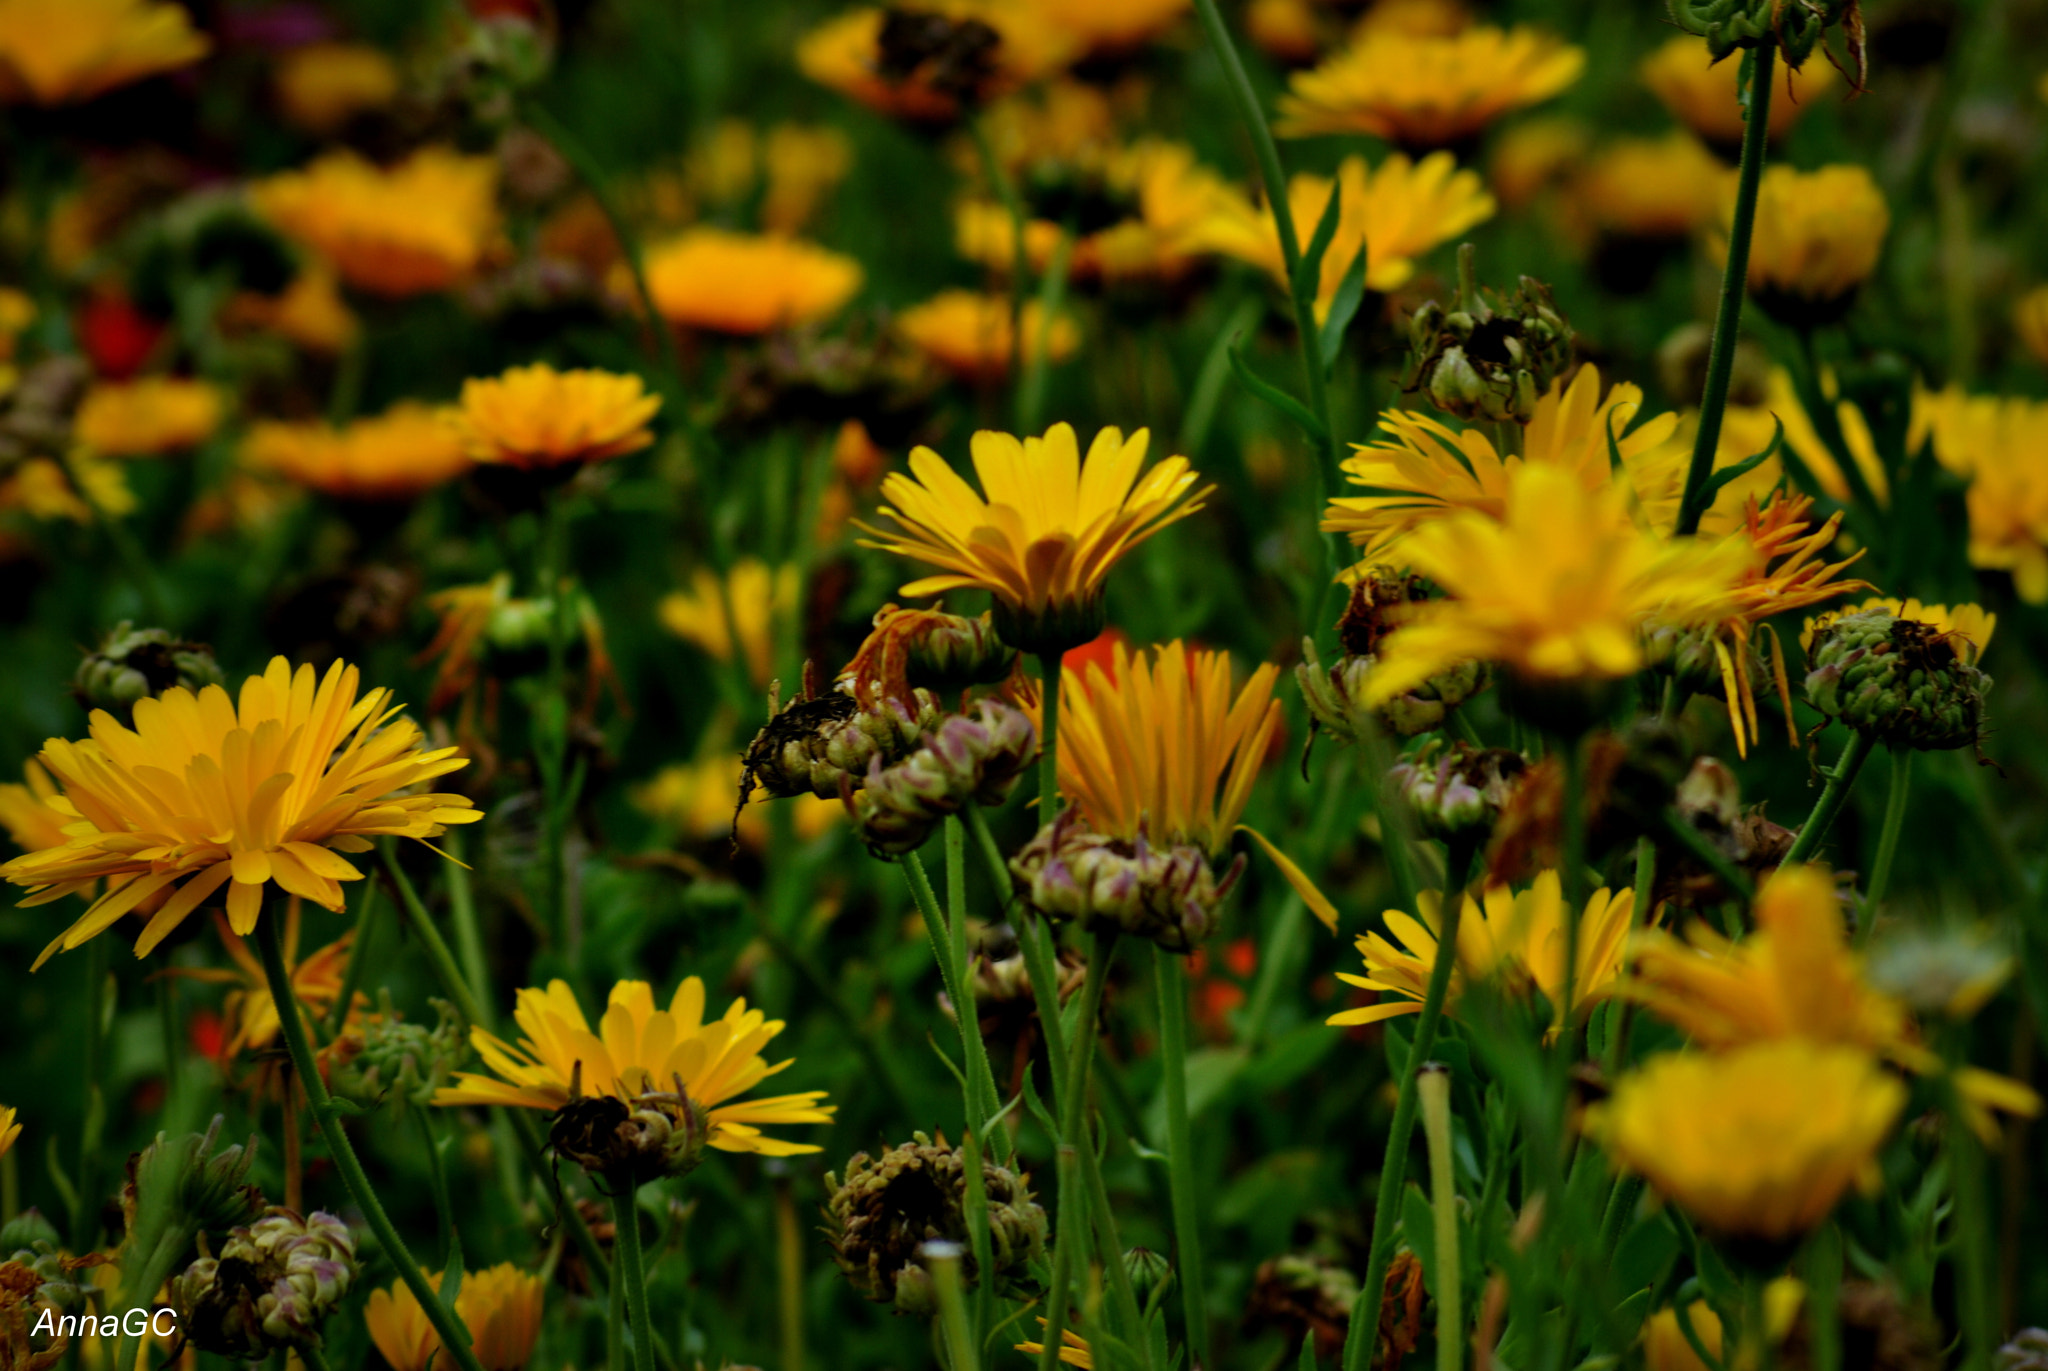 Photograph Yellow flowers by Anna Garcia on 500px